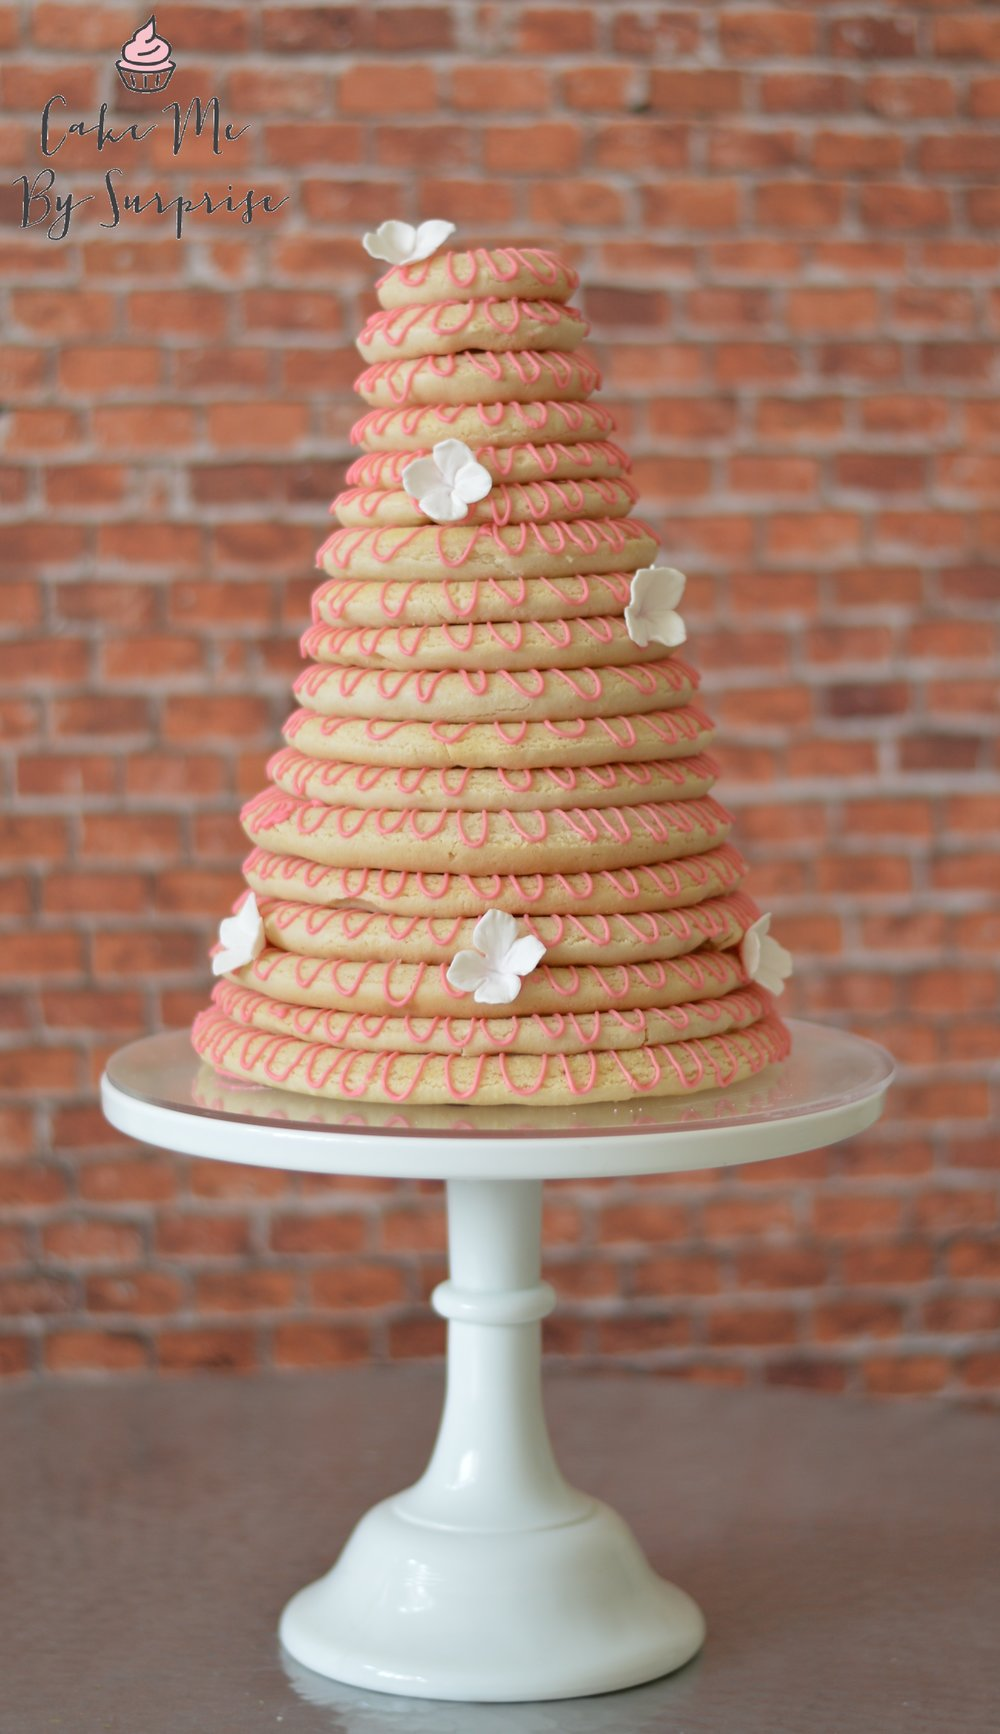 Kransekake Danish Wedding Cake.JPG